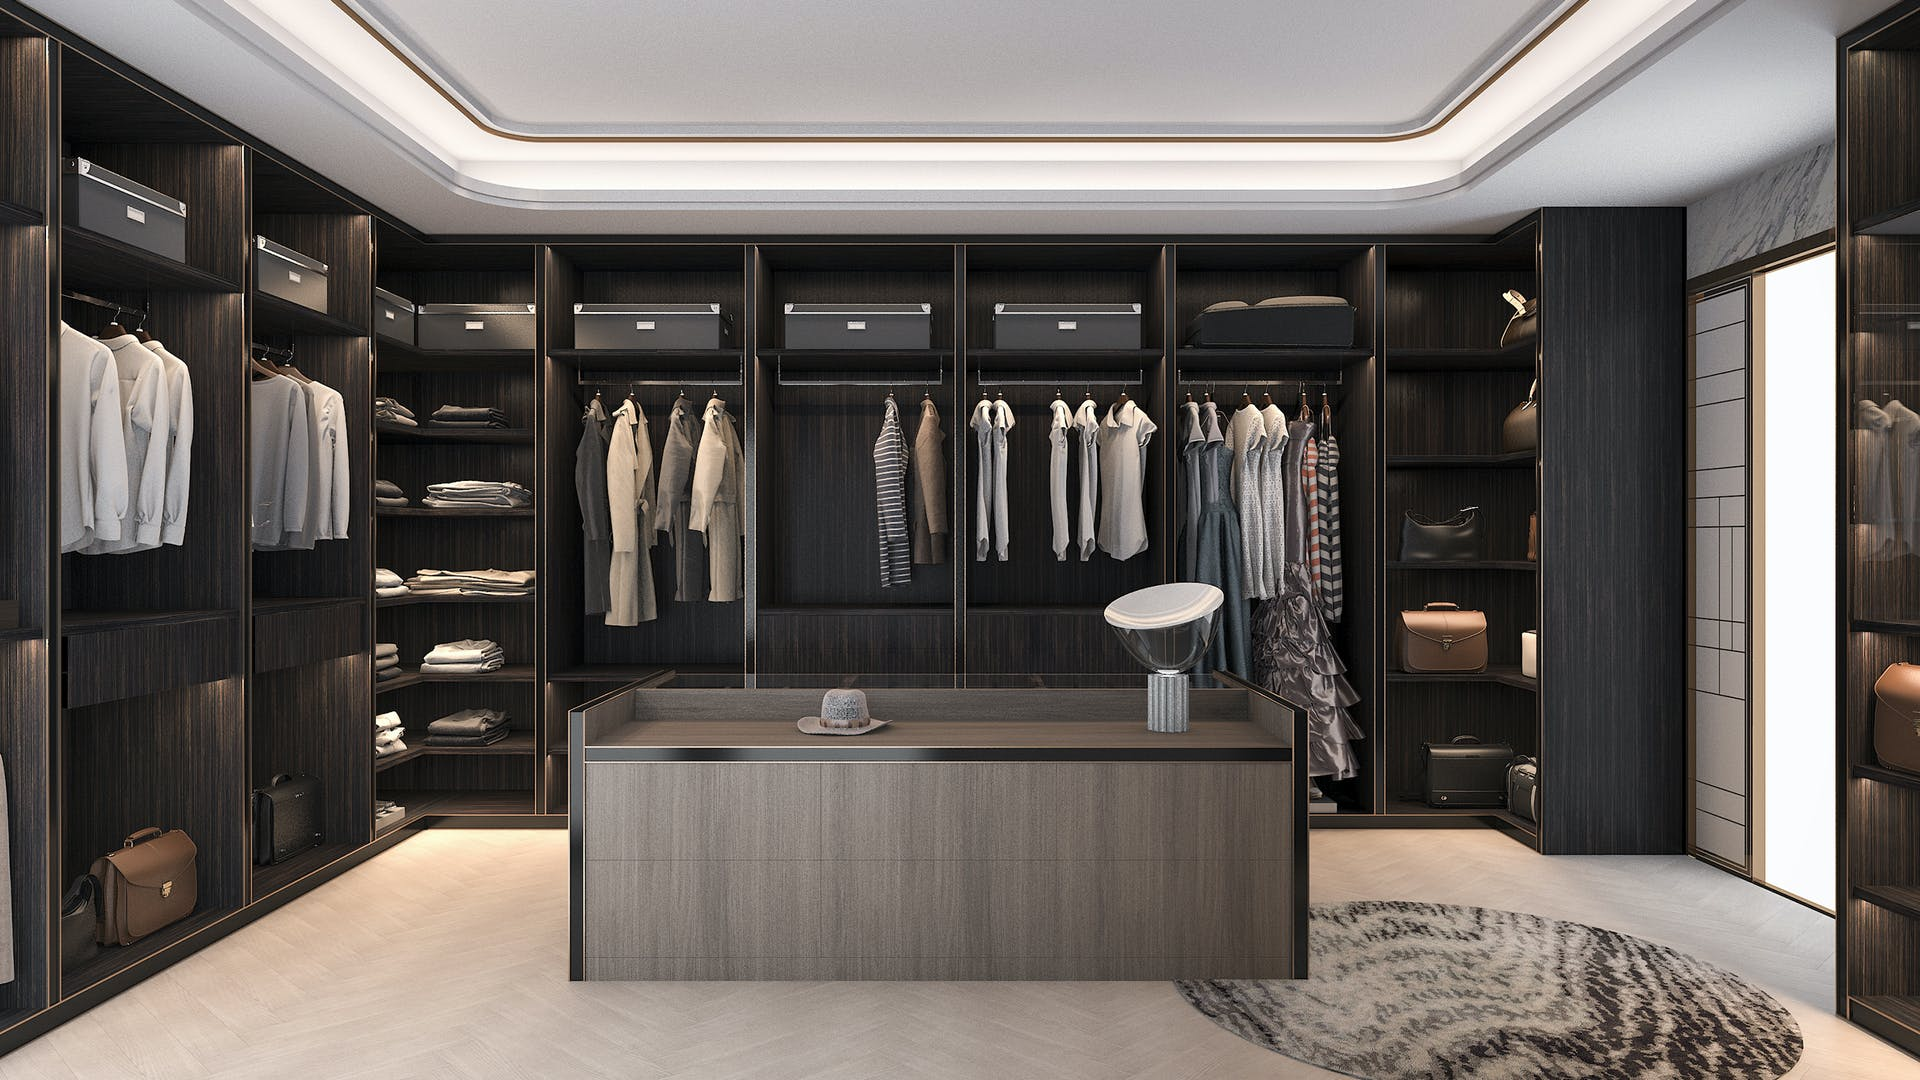 A very tidy and luxurious walk in wardrobe room